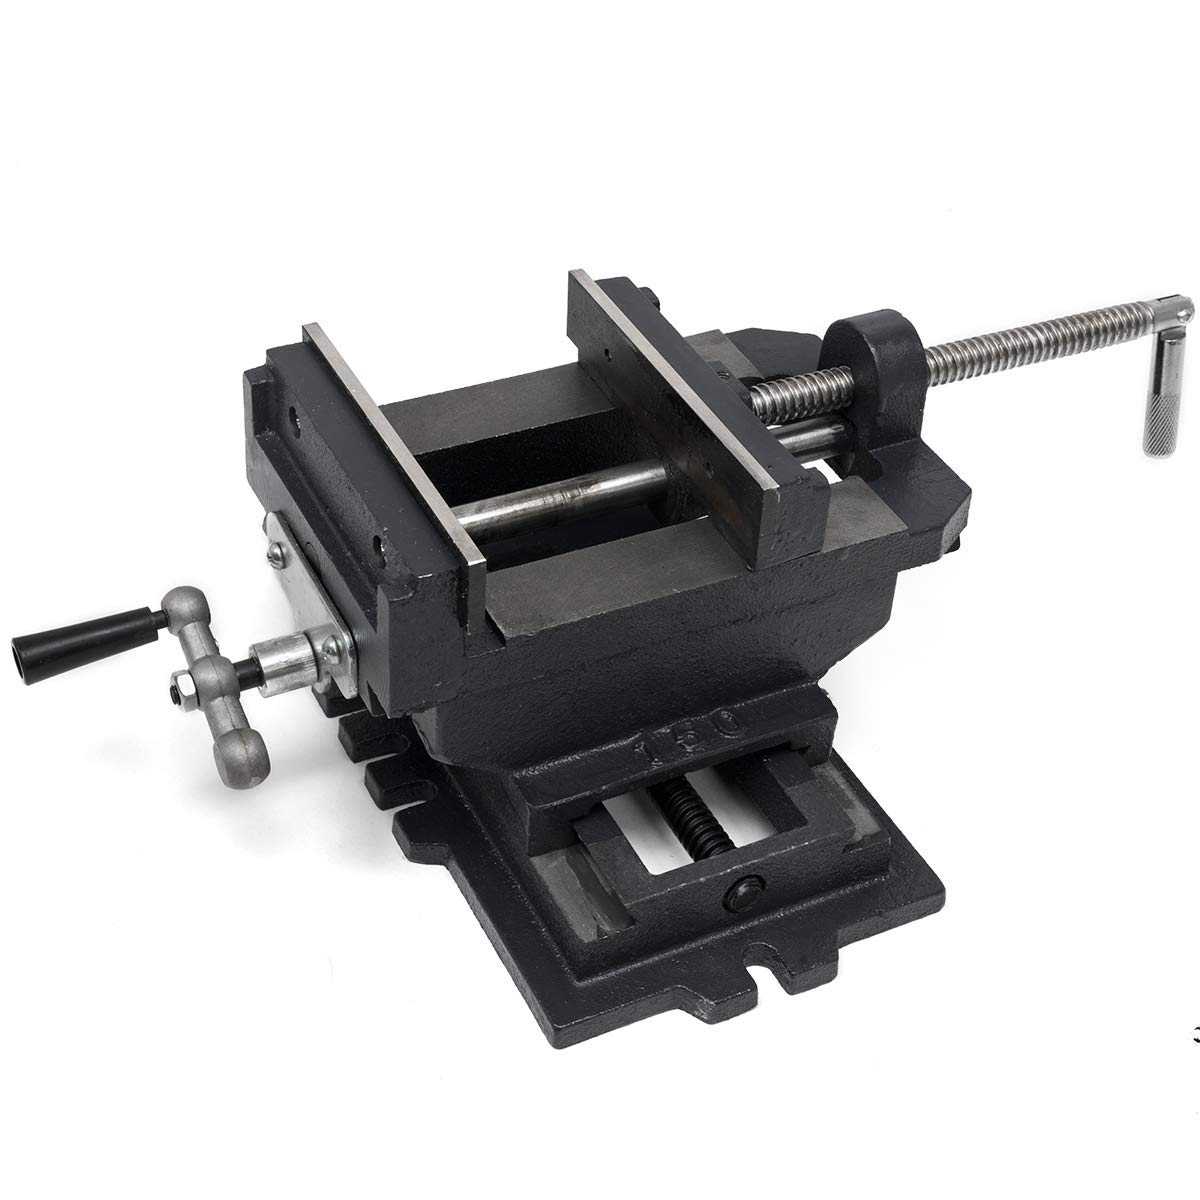 XtremepowerUS 4'' 2-Way Cross Slide Drill Press Vise Clamping Bench Top Mounting Holder